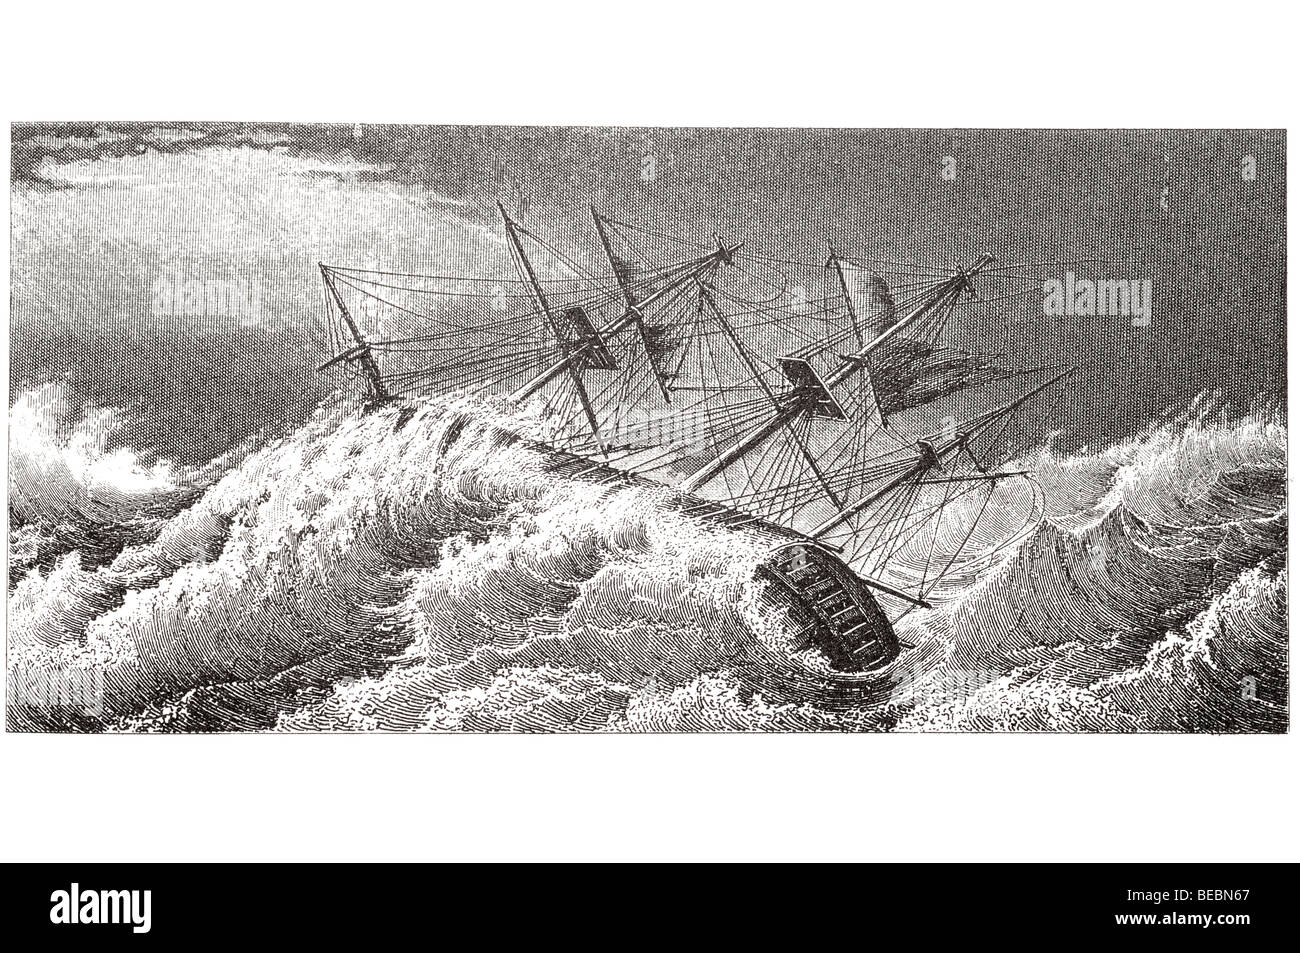 barque thrown on one side - Stock Image